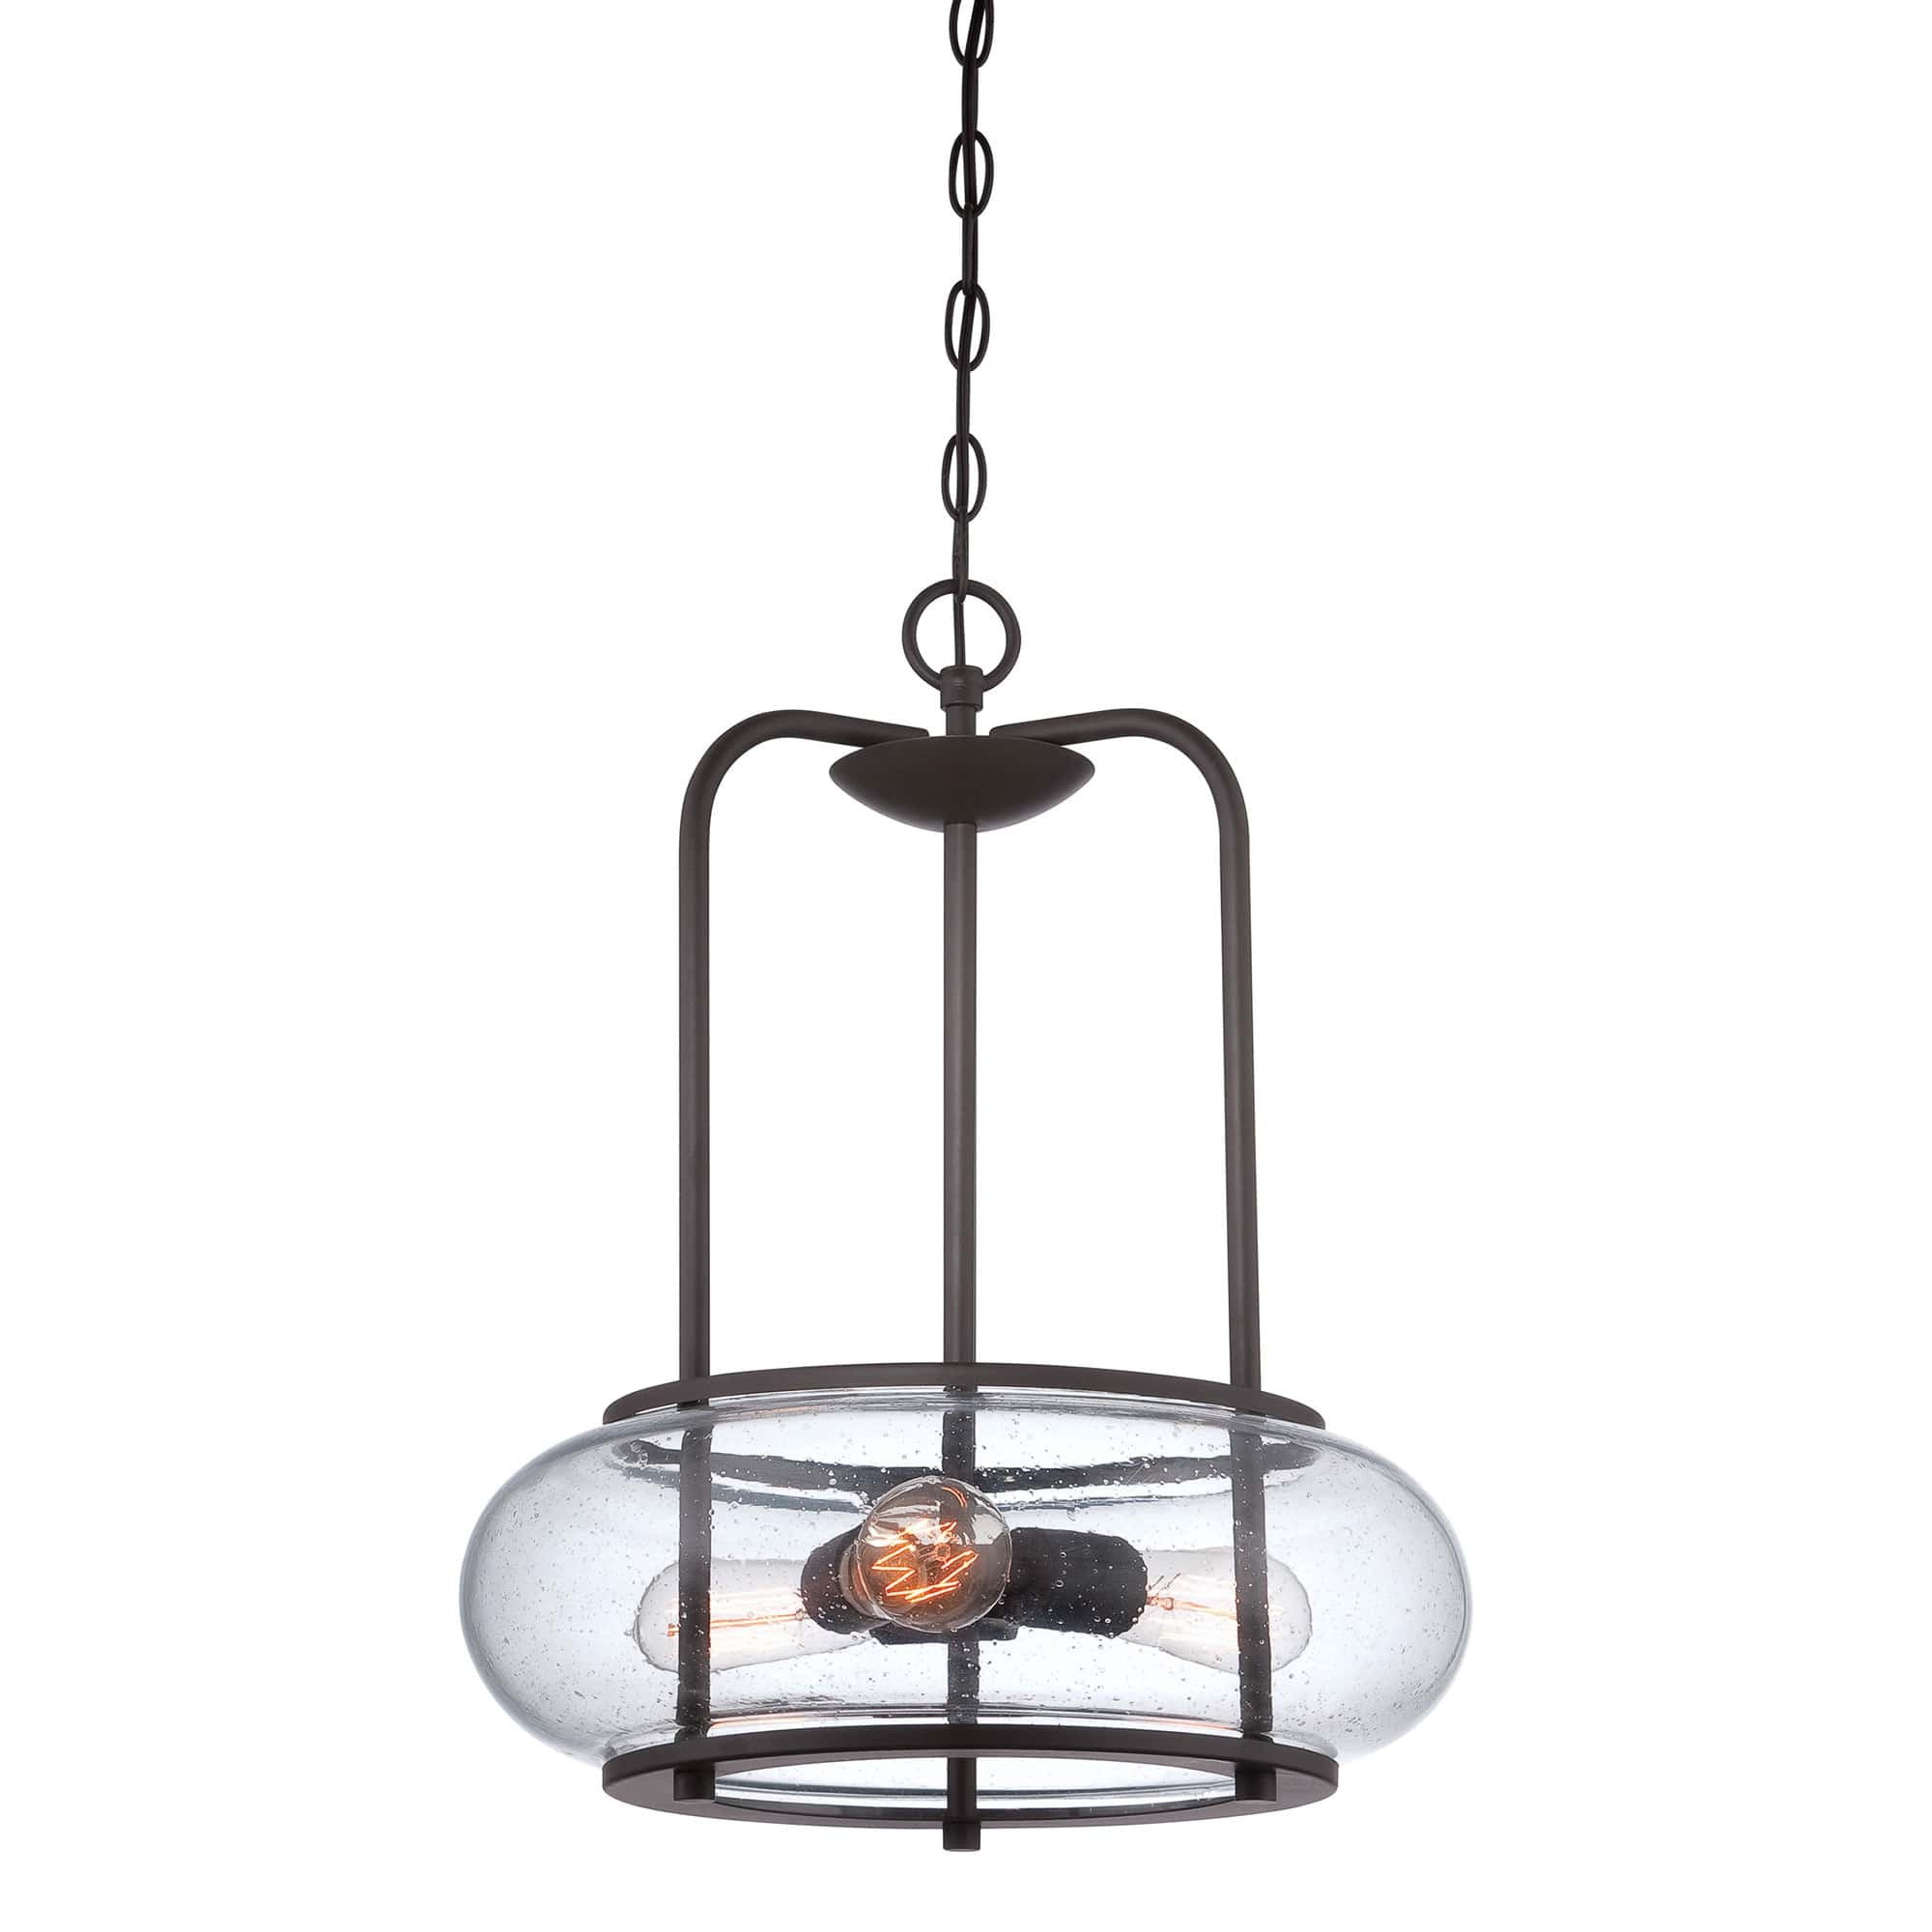 chandeliers ice lighting glass black cm ts pendant and matt pendants products oulton timothy metal